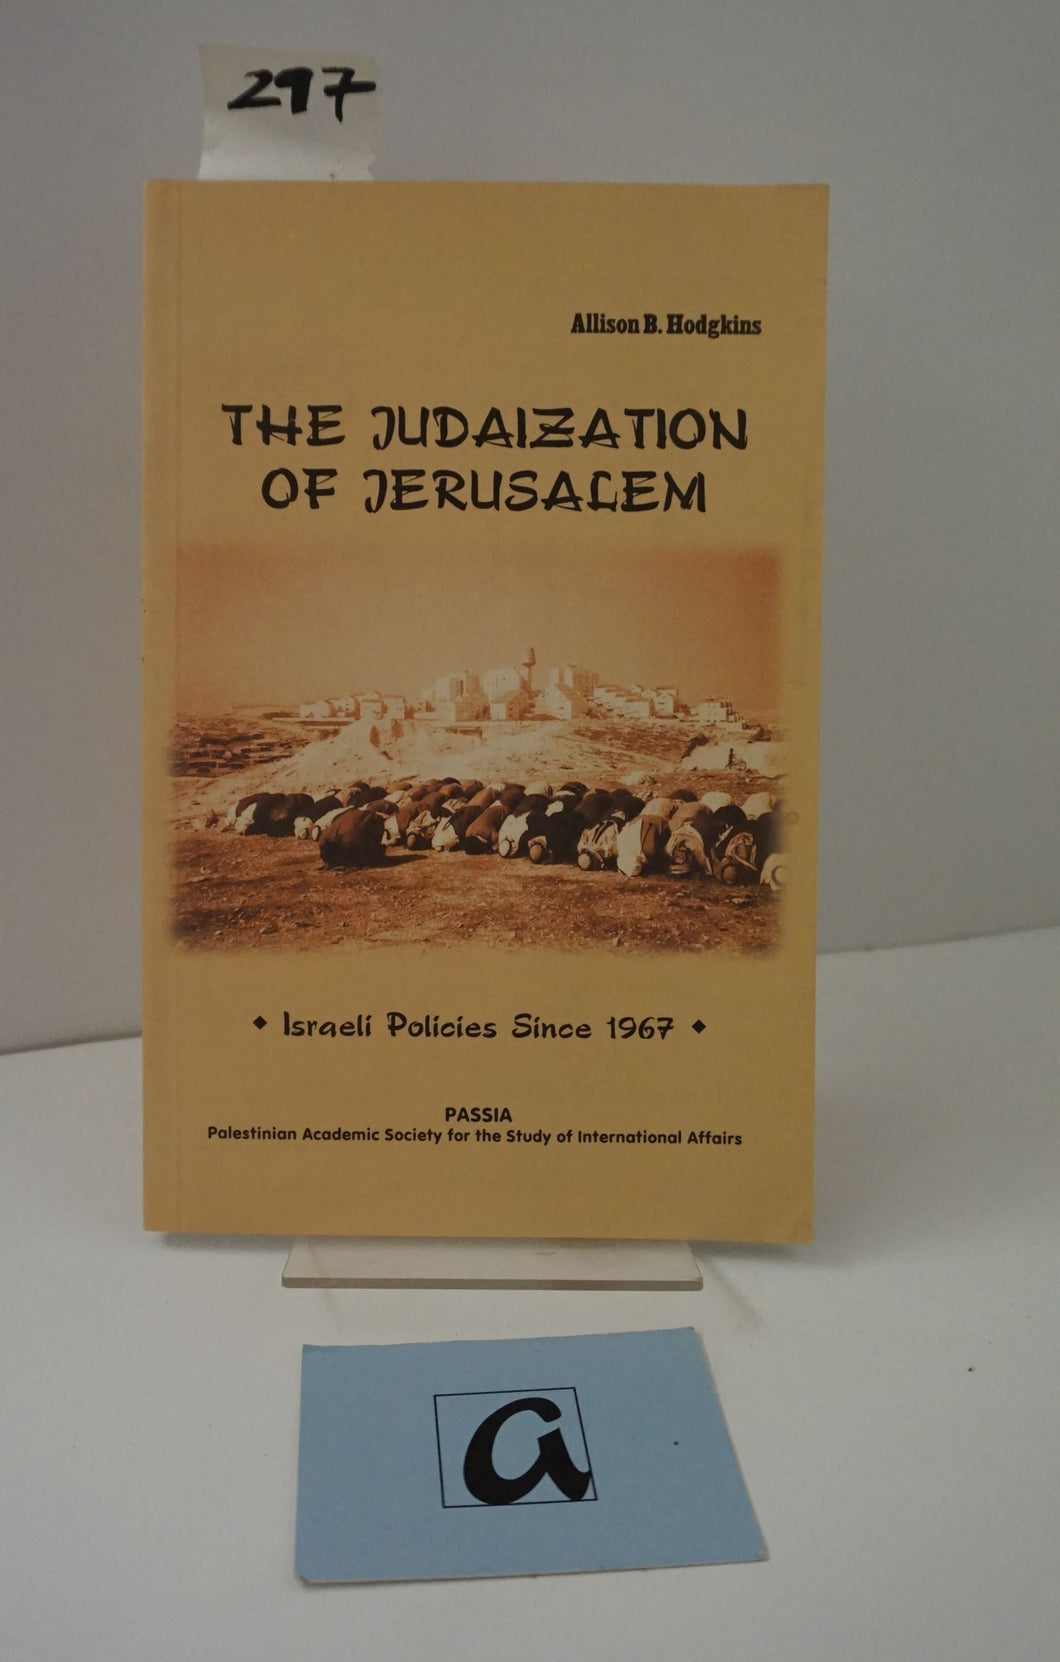 The Judaization of Jerusalem